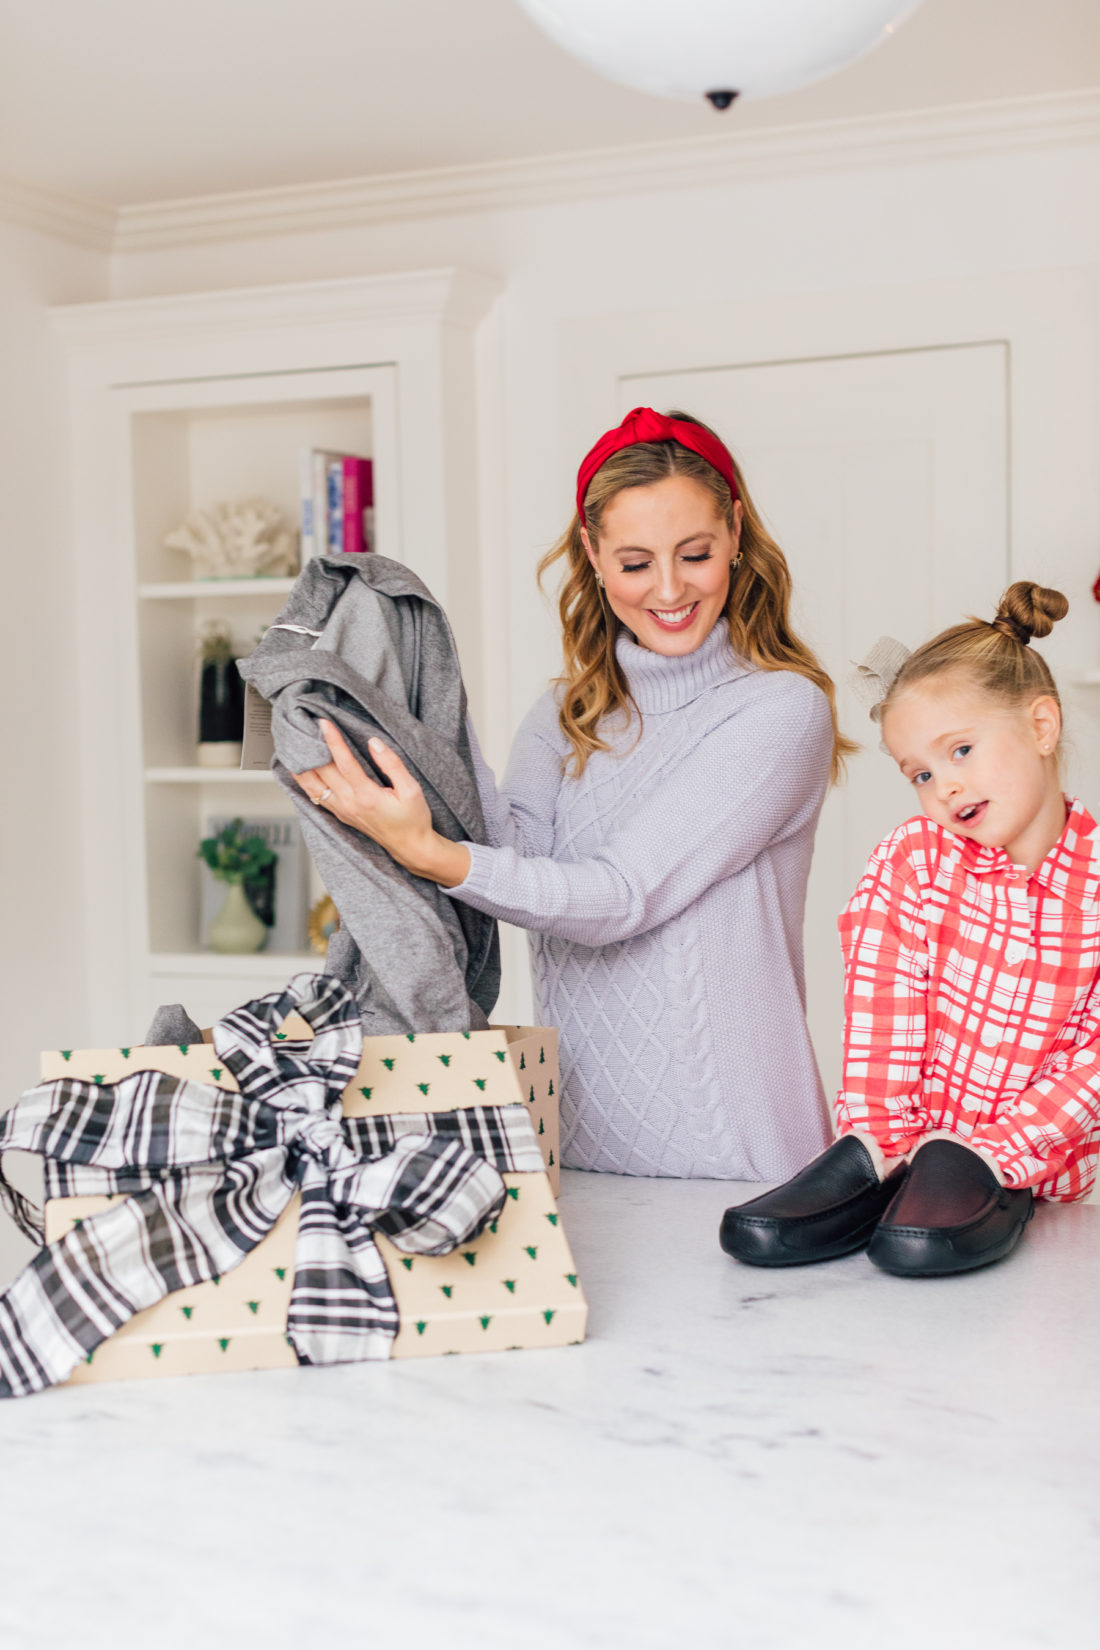 Eva Amurri Martino kisses daughter Marlowe while they wrap Christmas presents